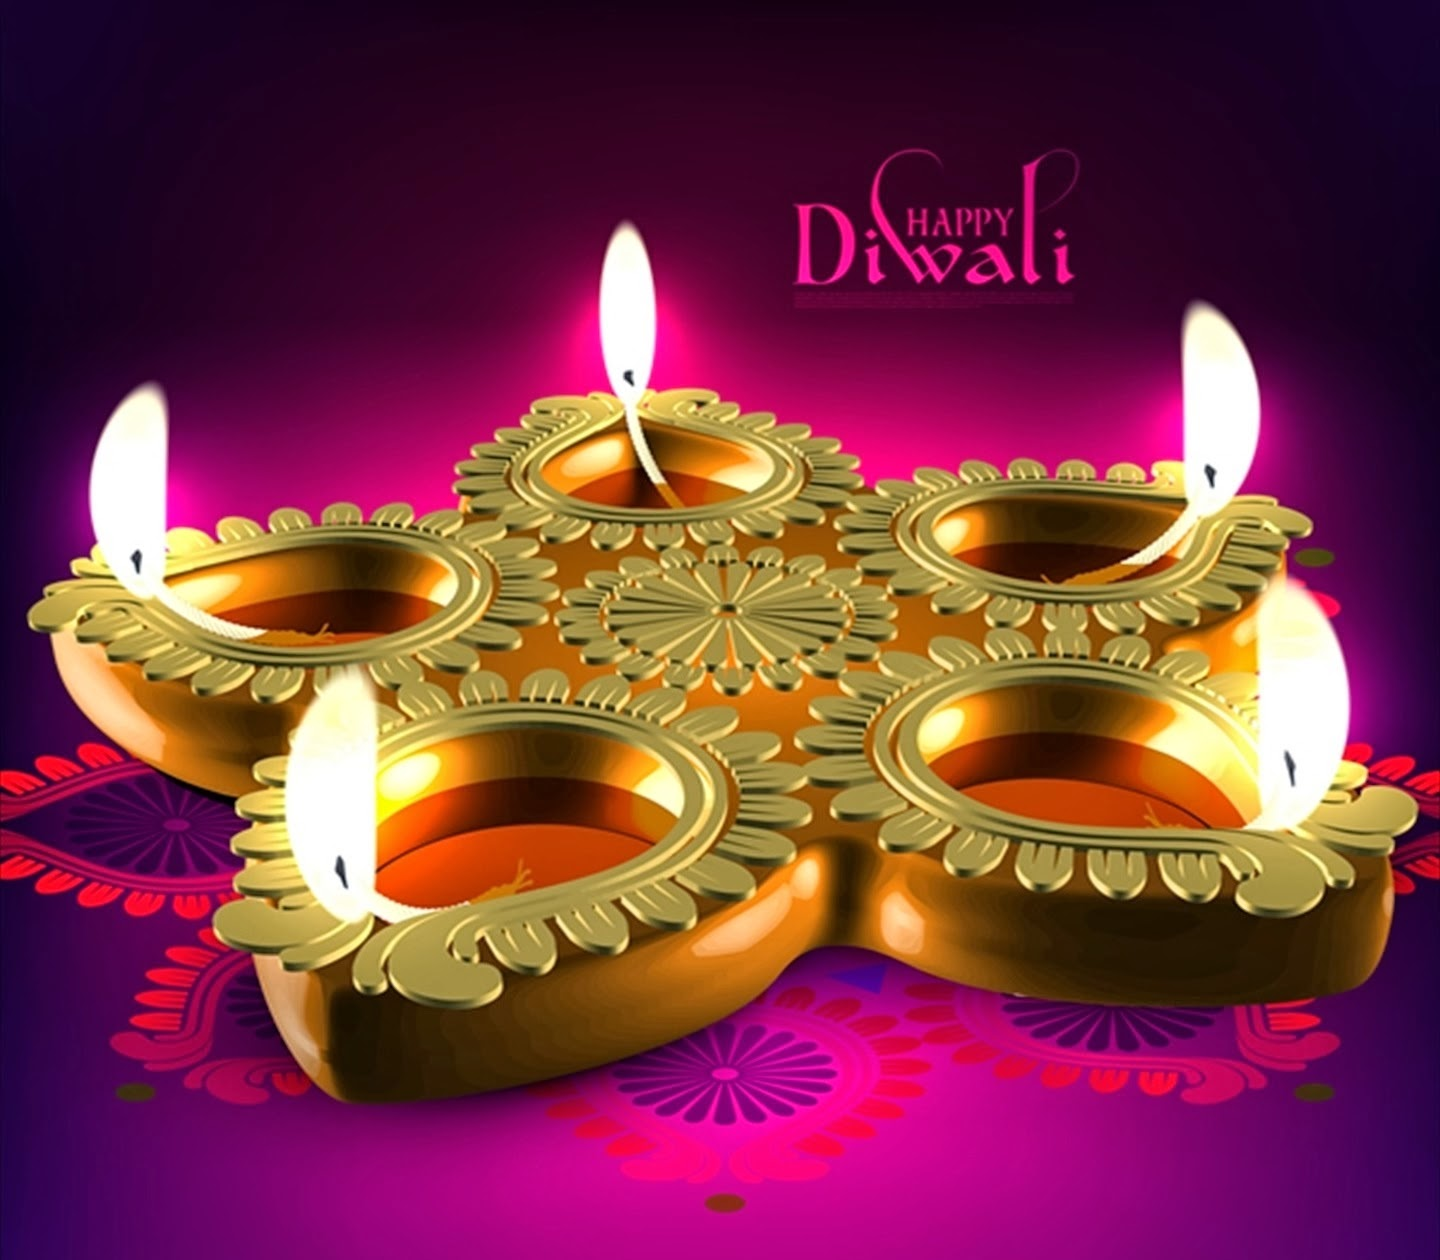 Happy Diwali 2017 Wallpapers Pictures Photos #Happy Diwali ...